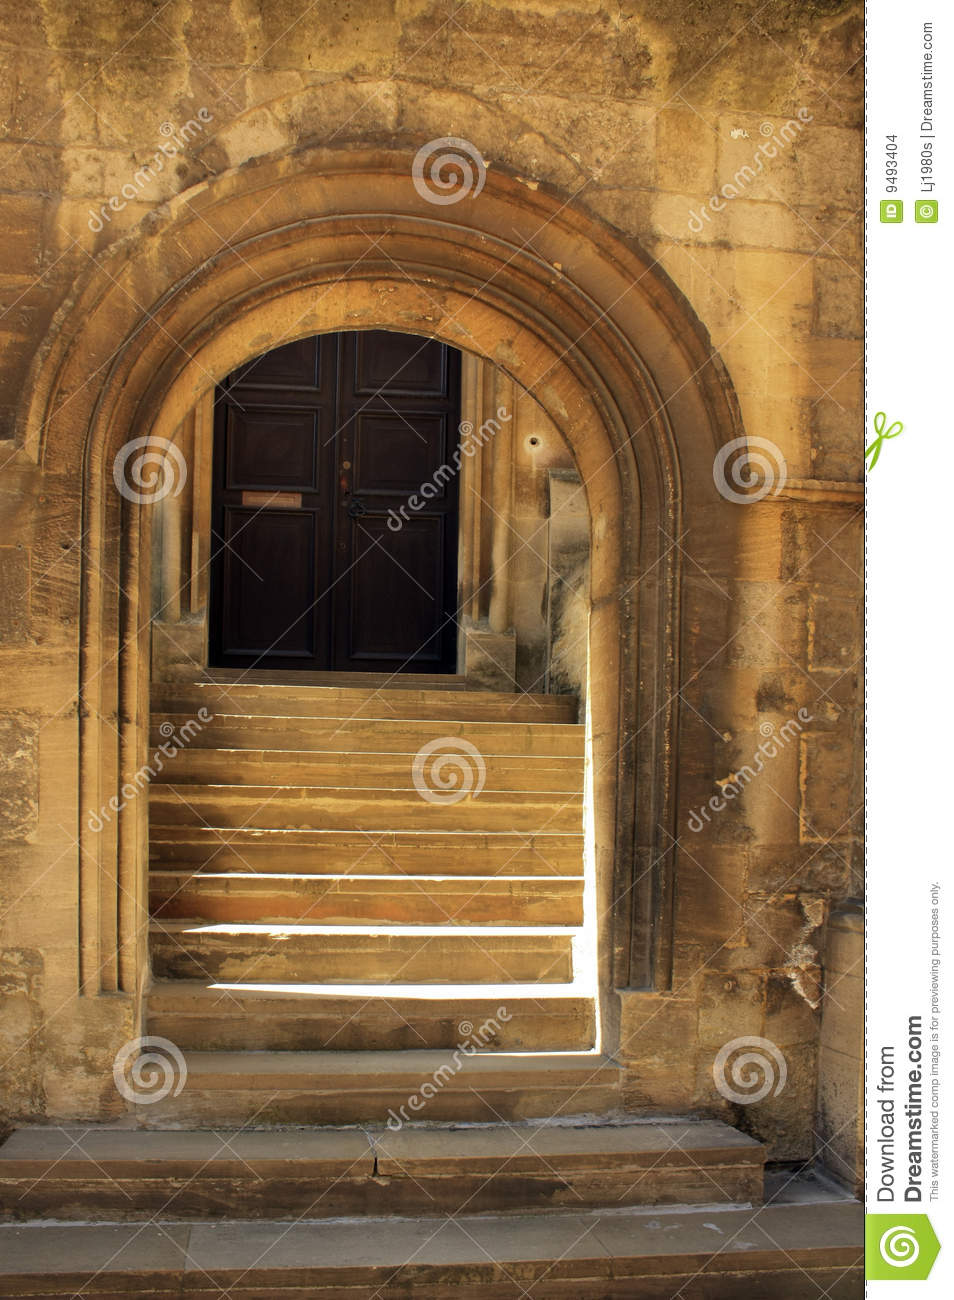 how to get into oxford university